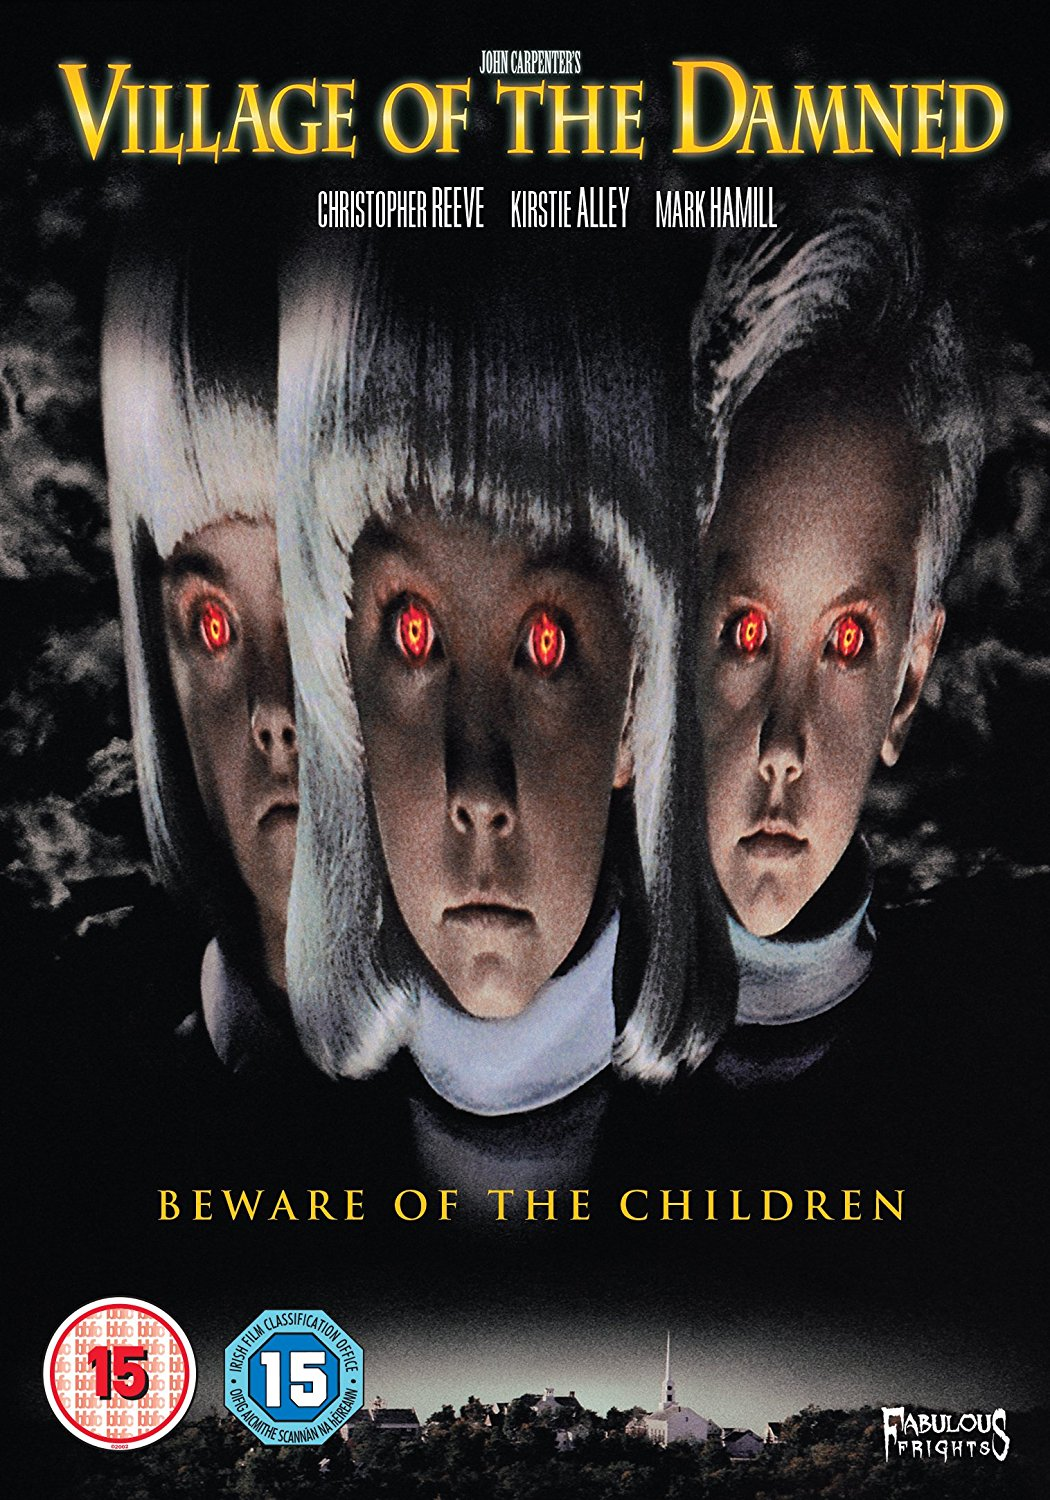 Buy Village of the Damned